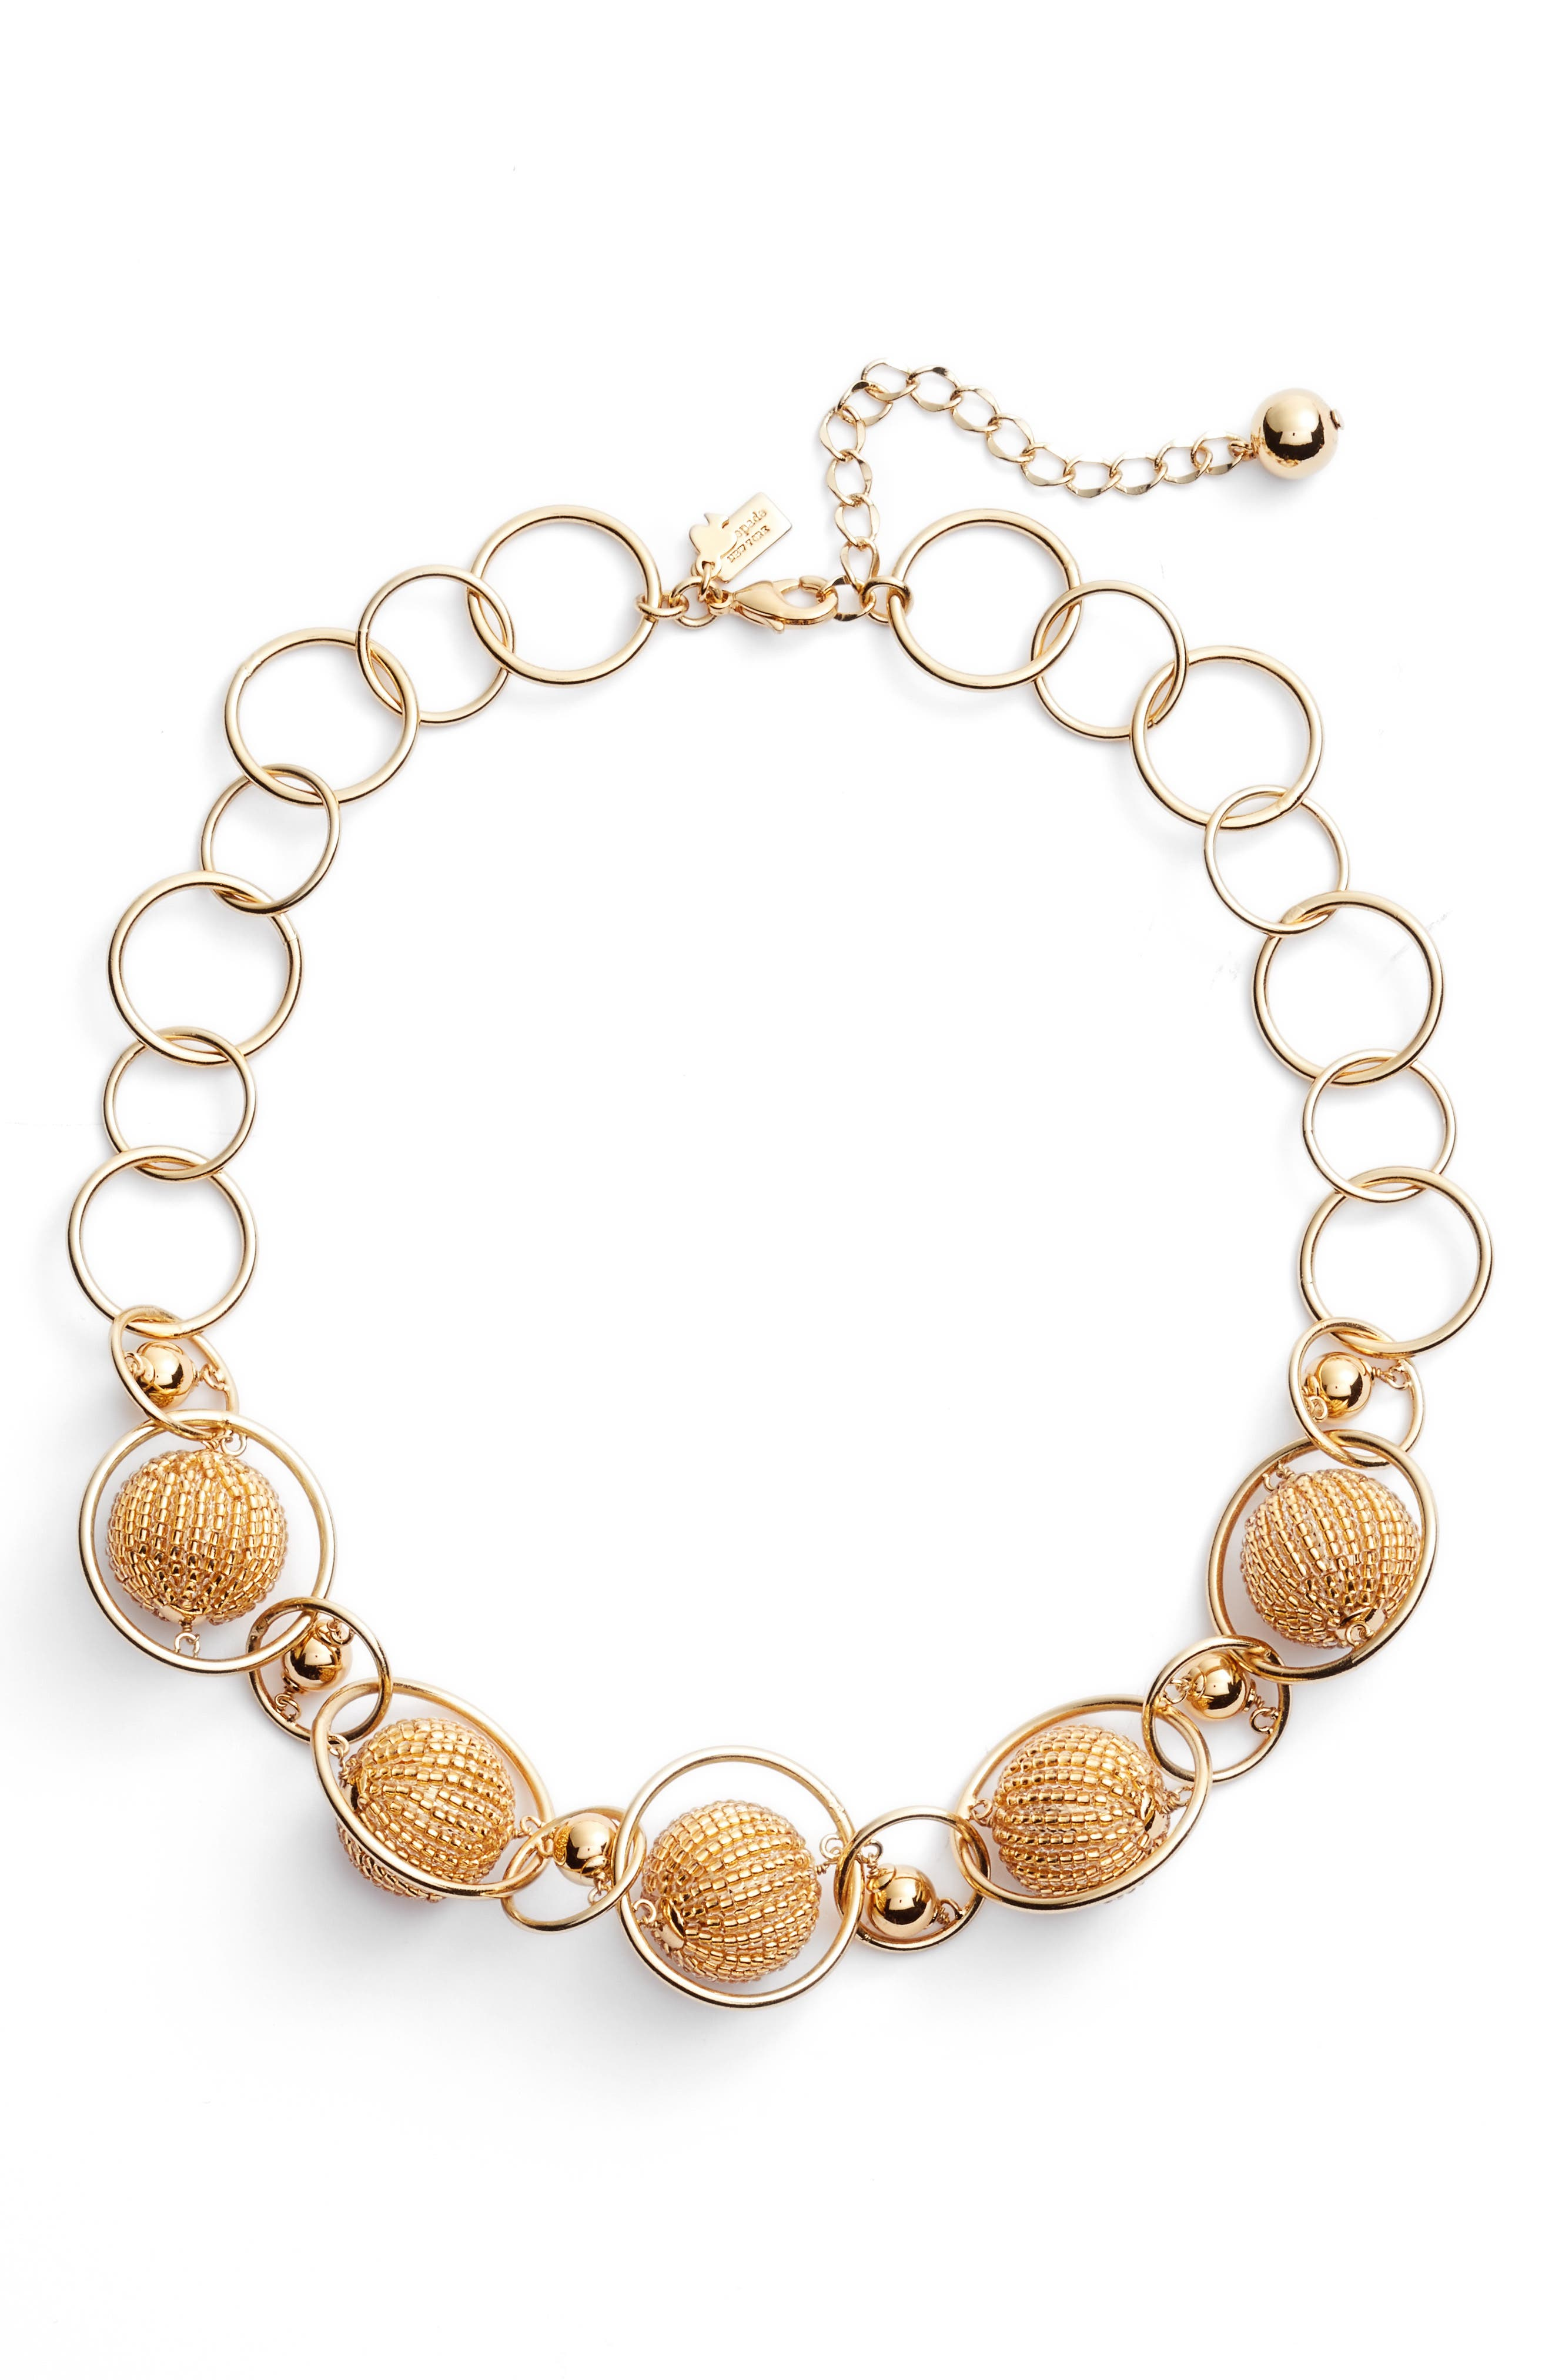 Main Image - kate spade new york beads and baubles choker